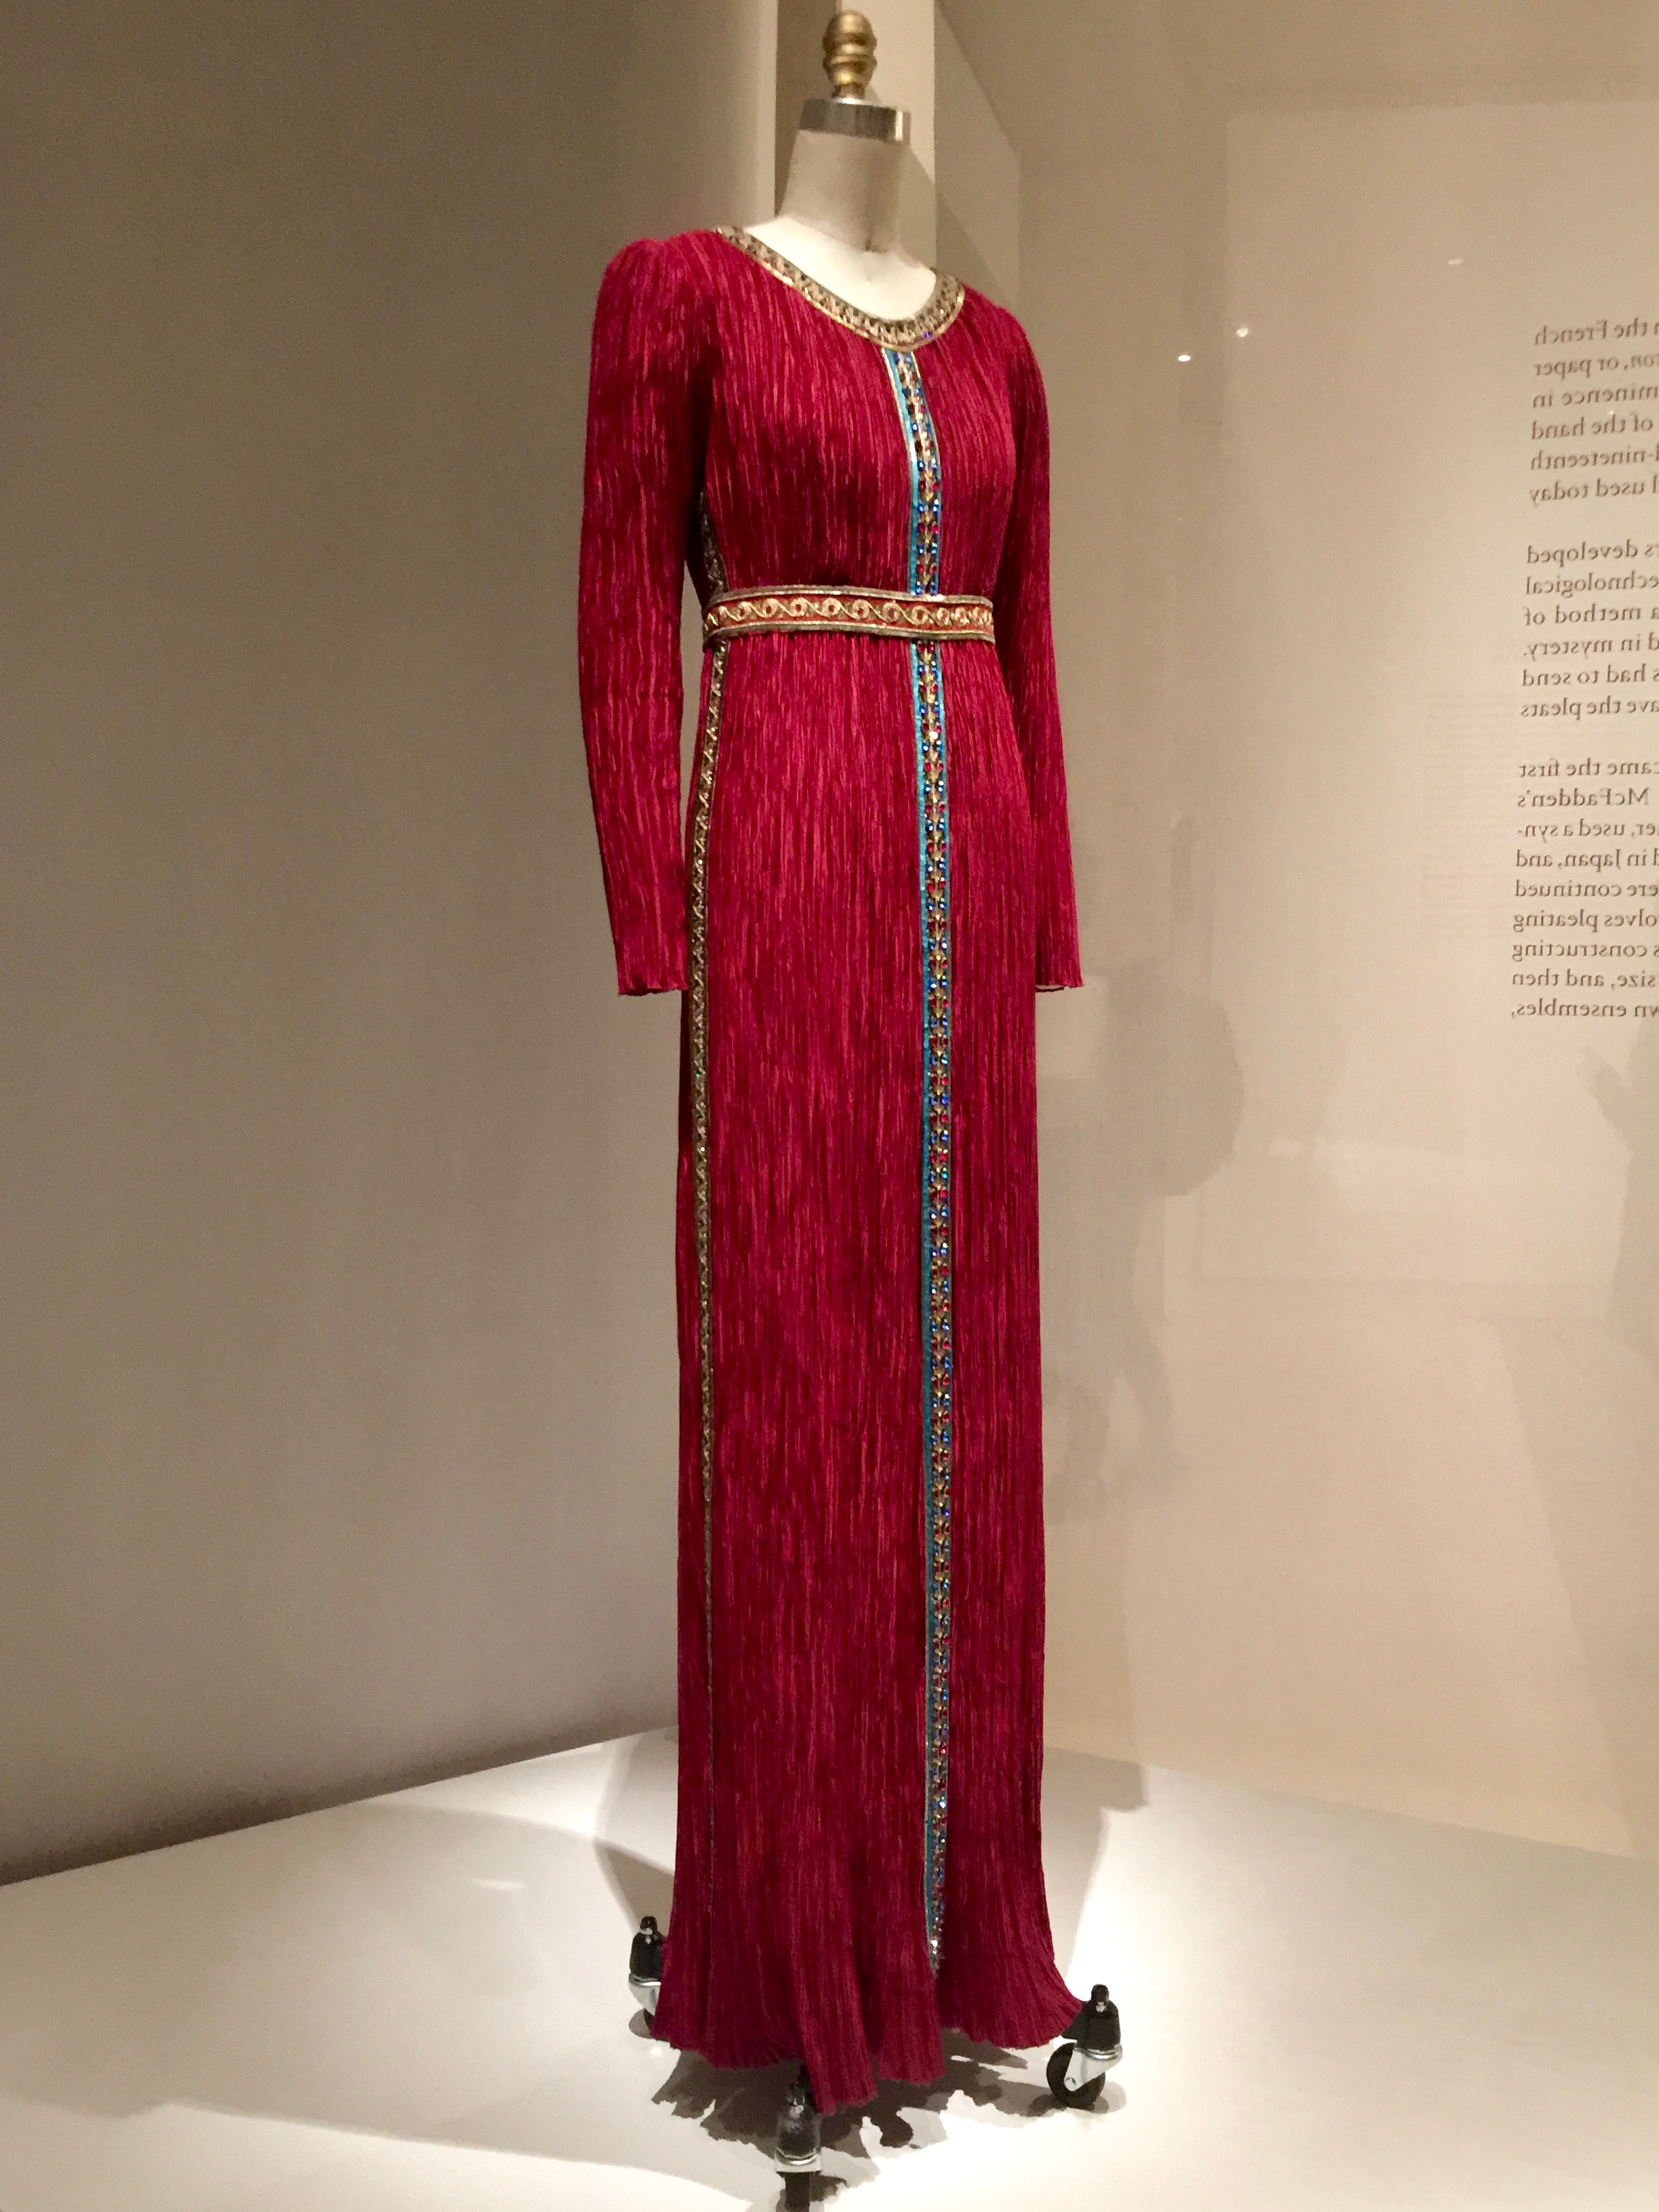 """Mary McFadden  DRESS, Ca. 1980,pret-a-porter  Machine-sewn and """"Marii"""" machine-pleated red polyester charmeuse, hand-stitched with hand-embroidered trims of sequins, bead, and gold metallic thread"""